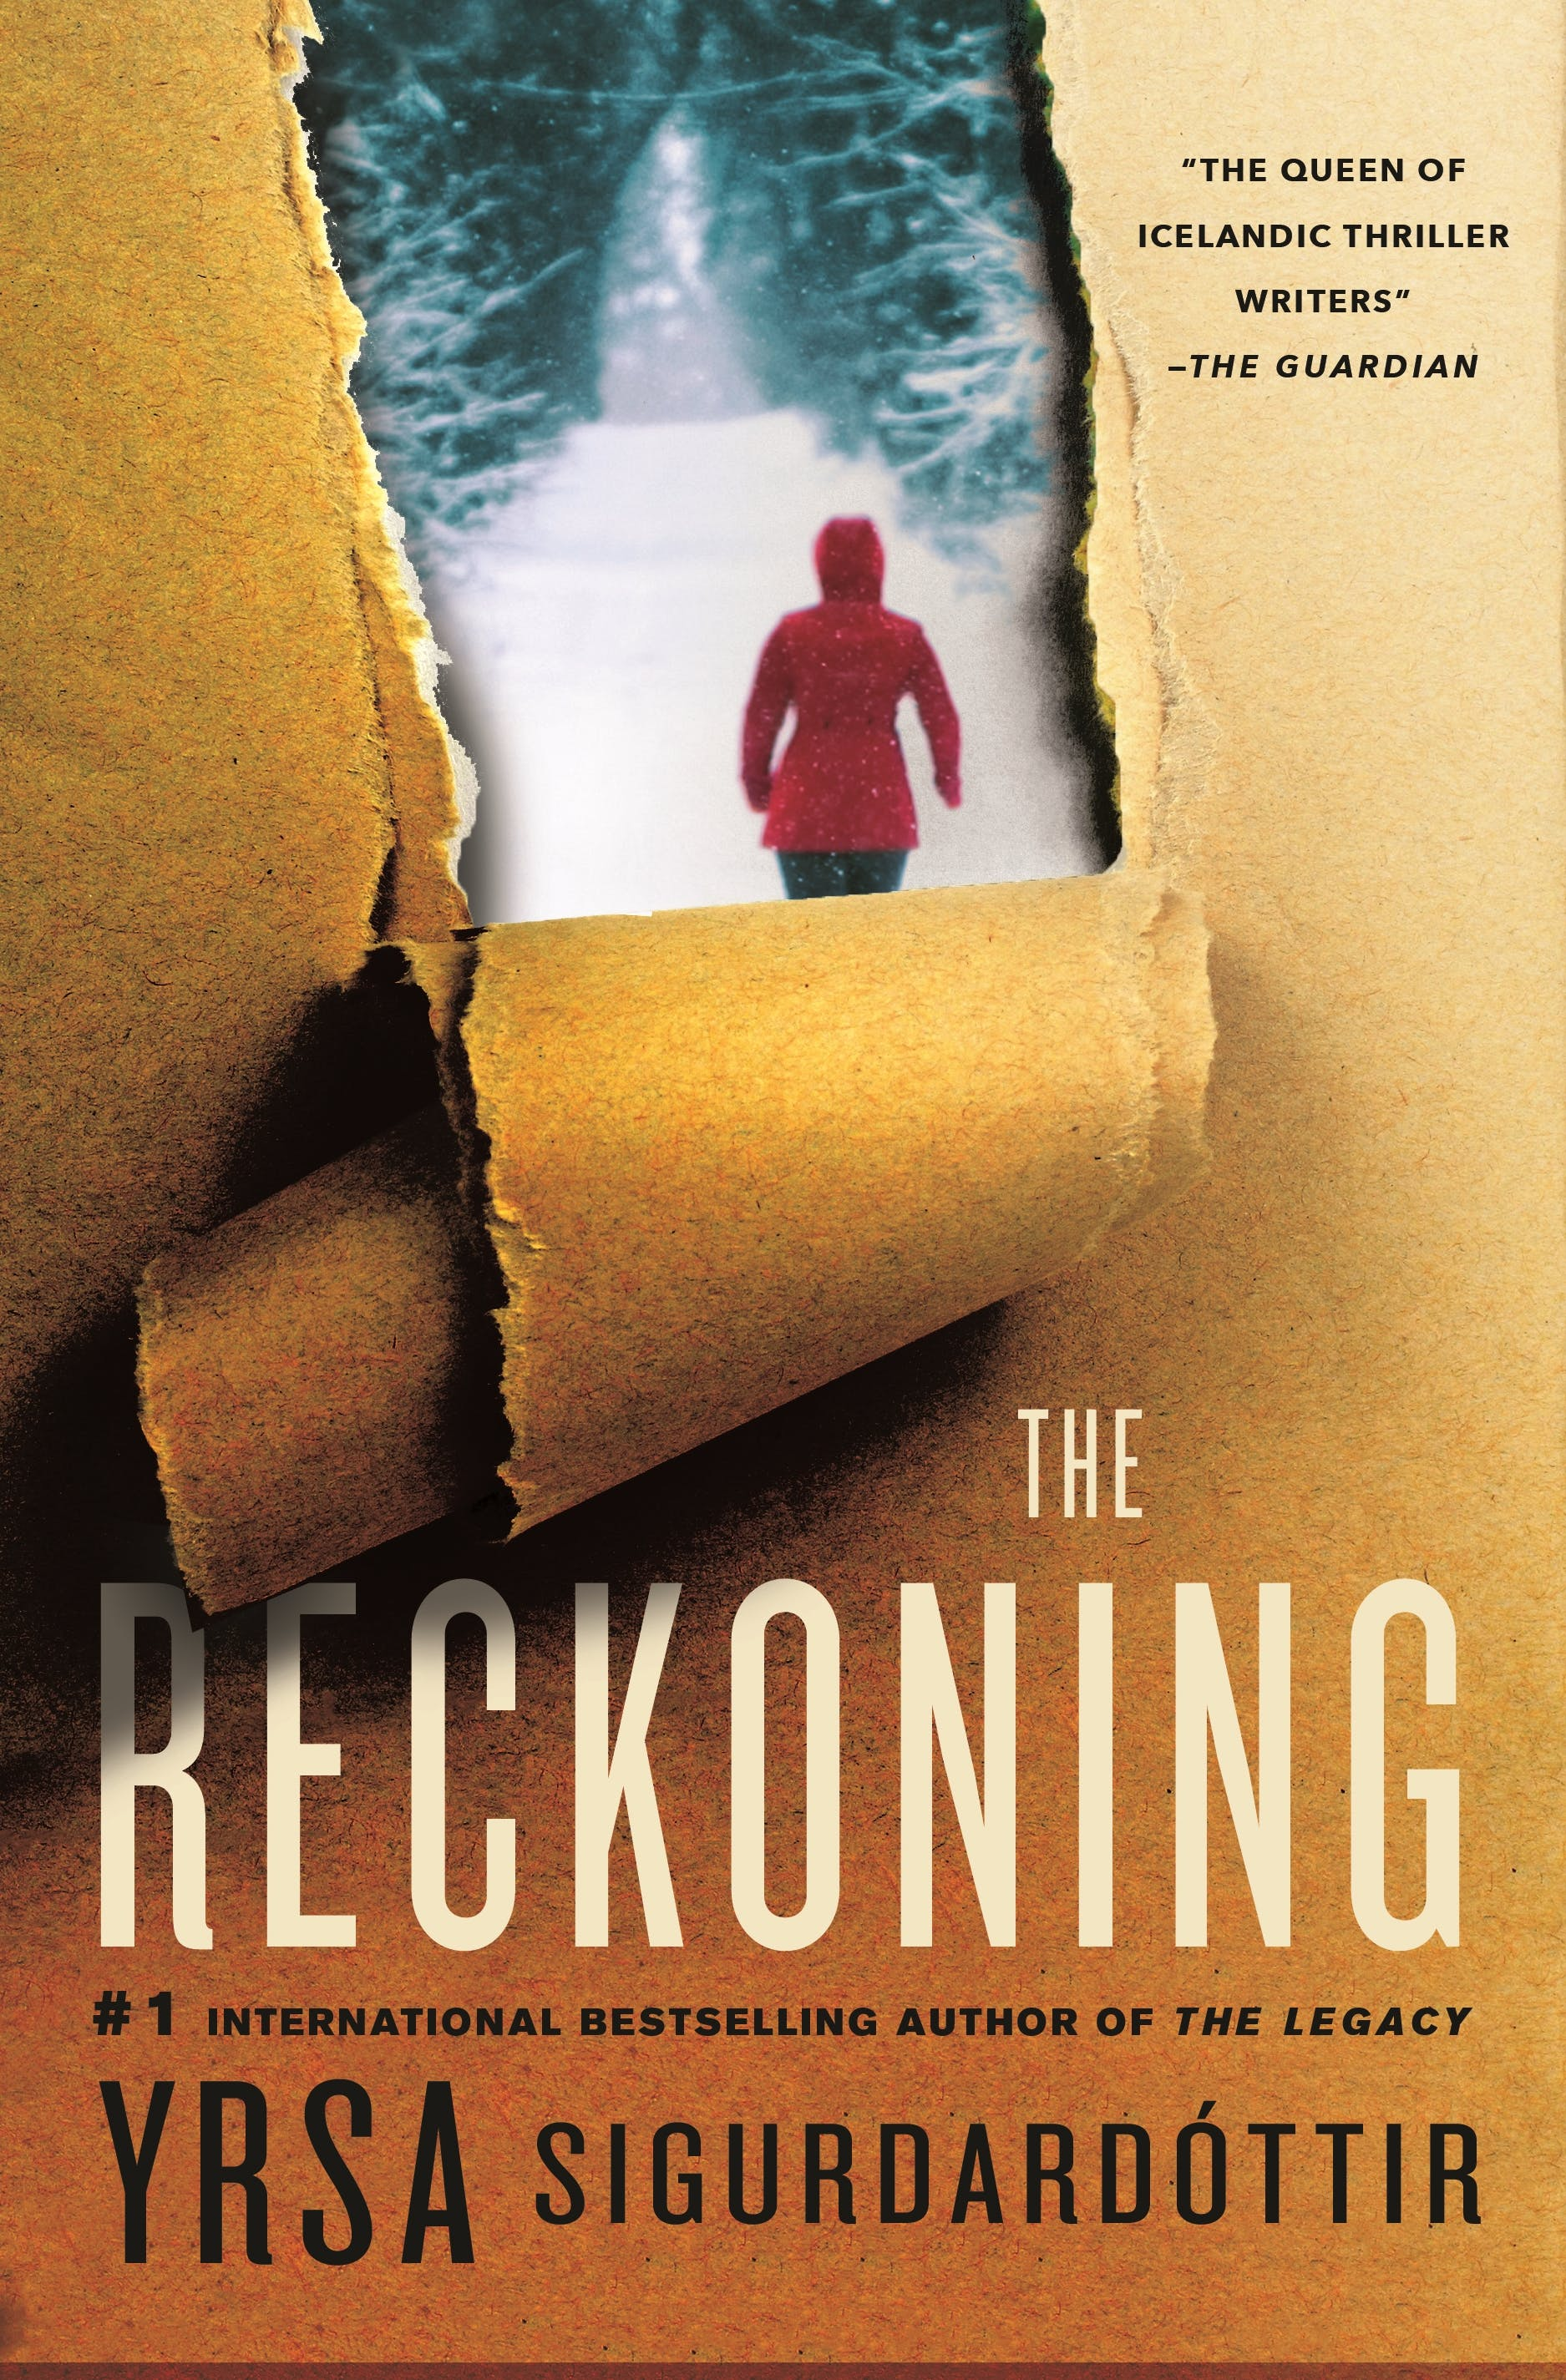 Image of The Reckoning